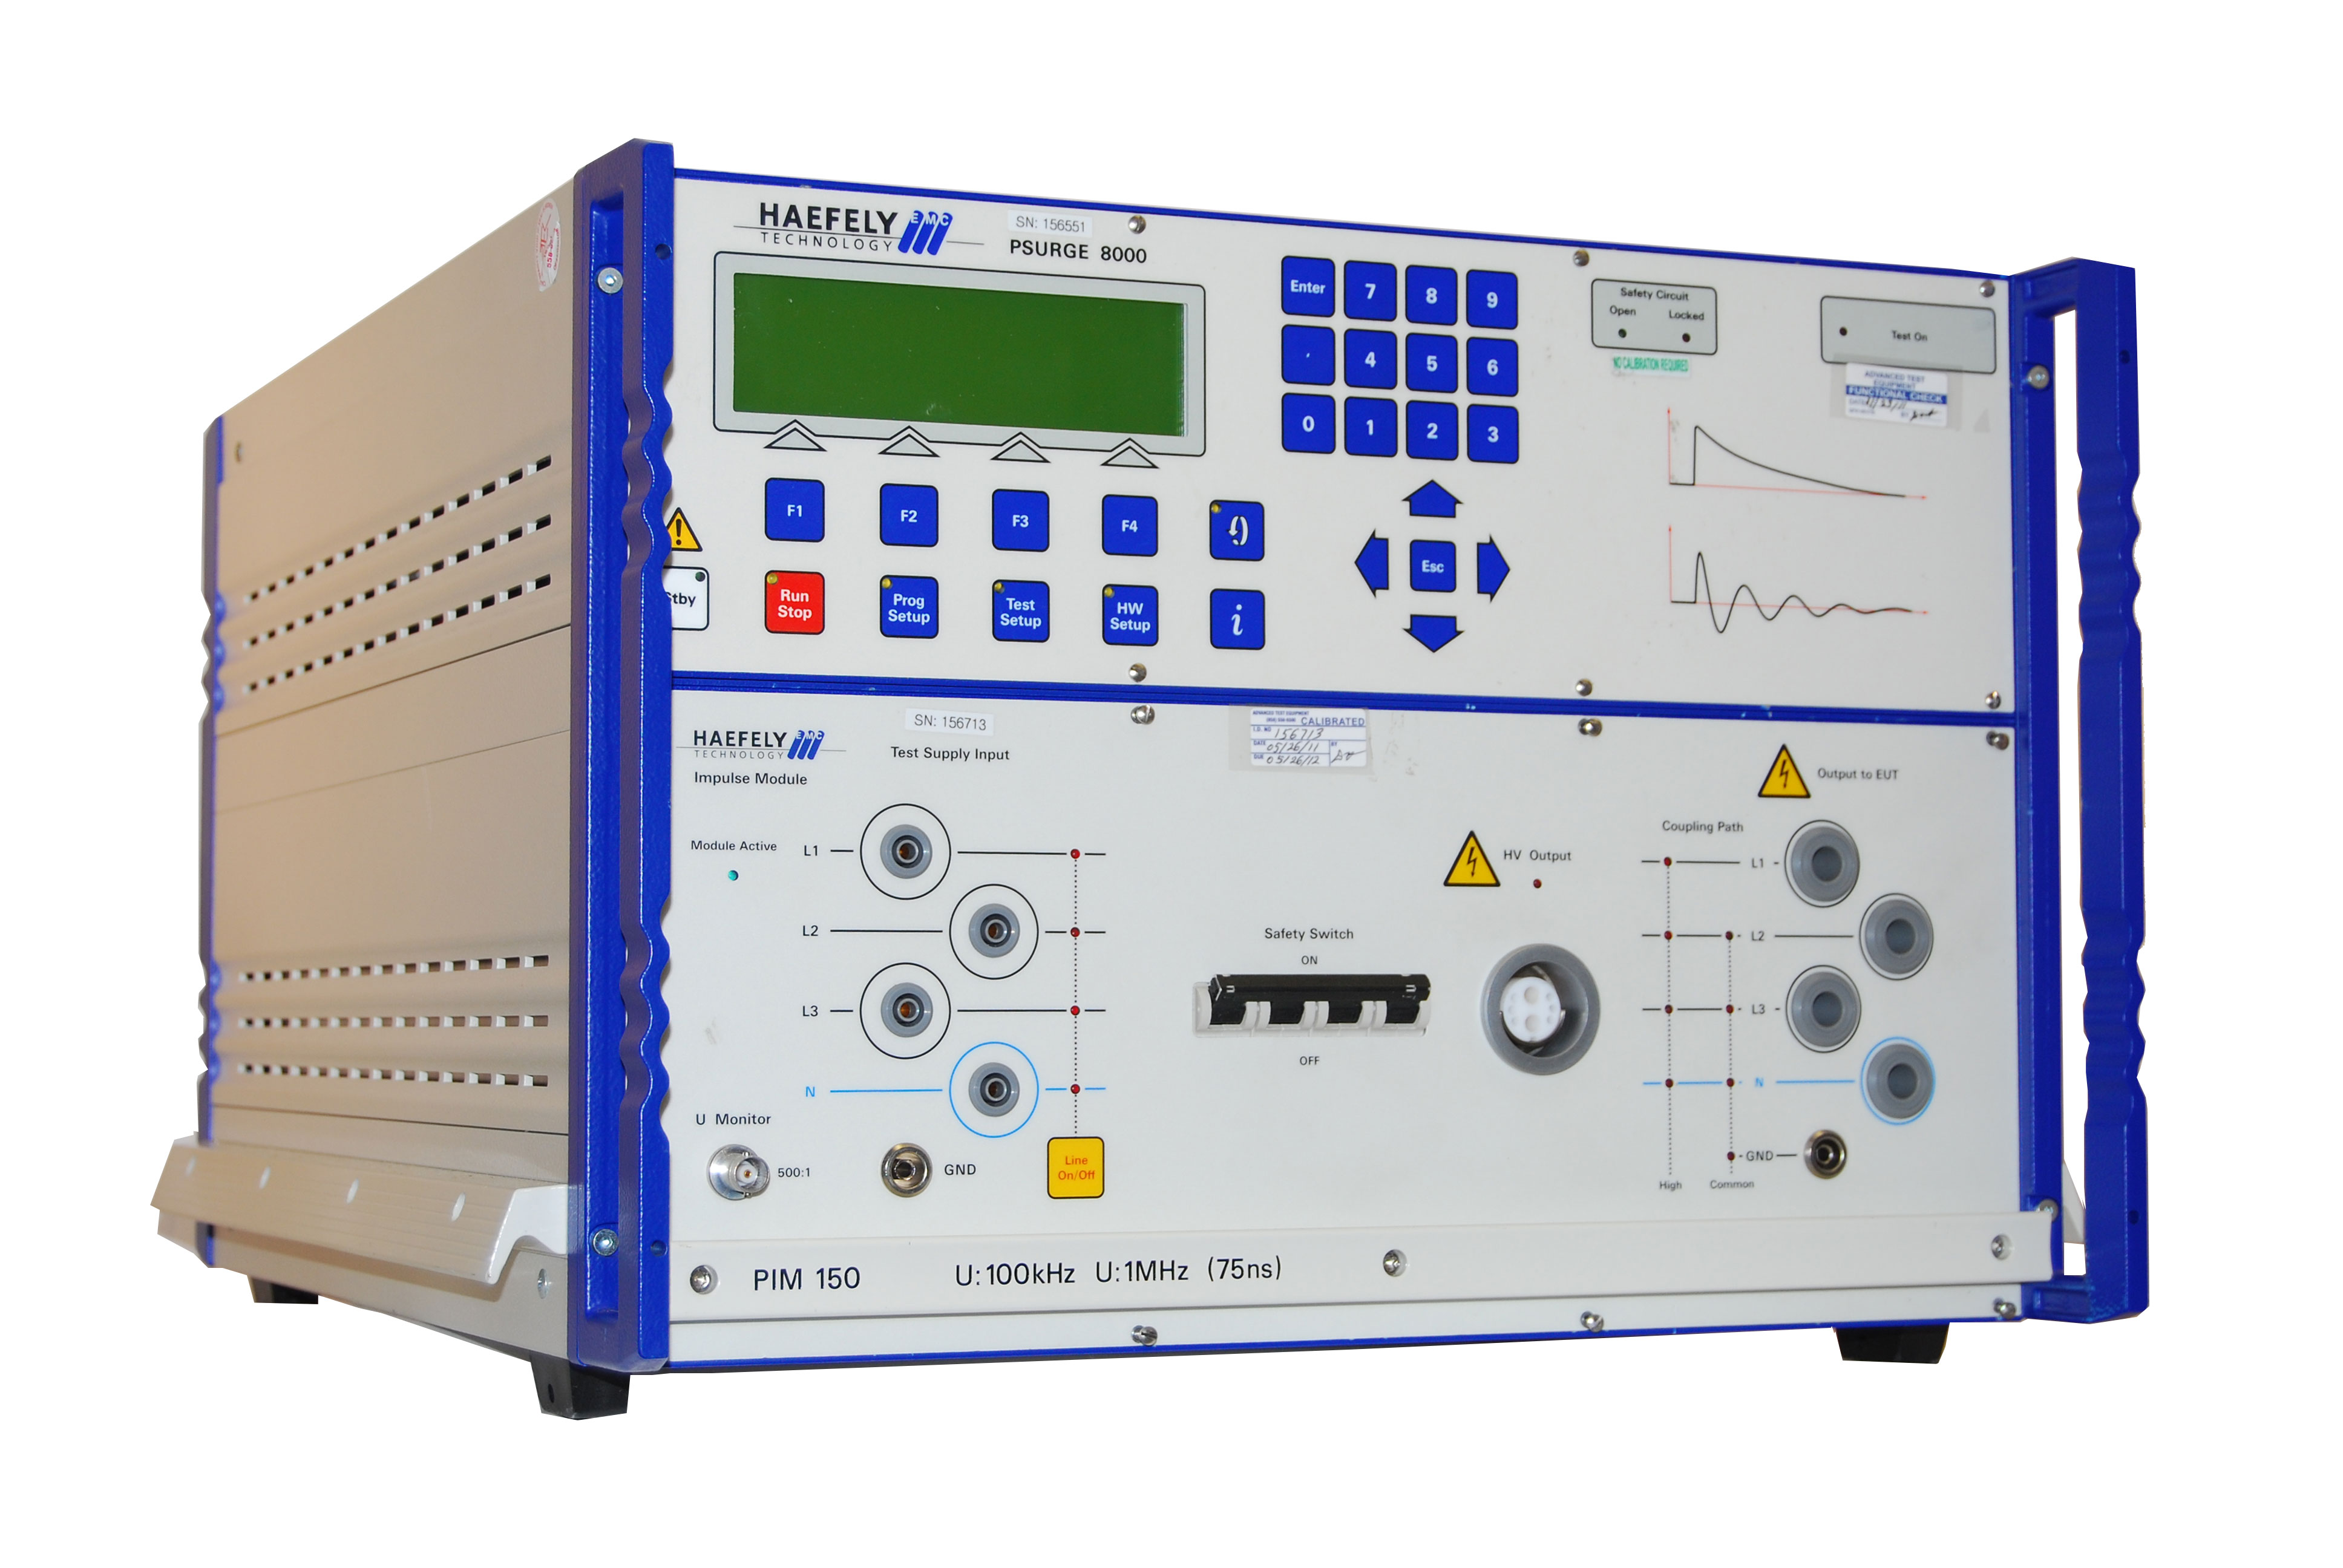 Rent Haefely PSURGE 8000 Surge Platform Test System for UL 1941 Testing